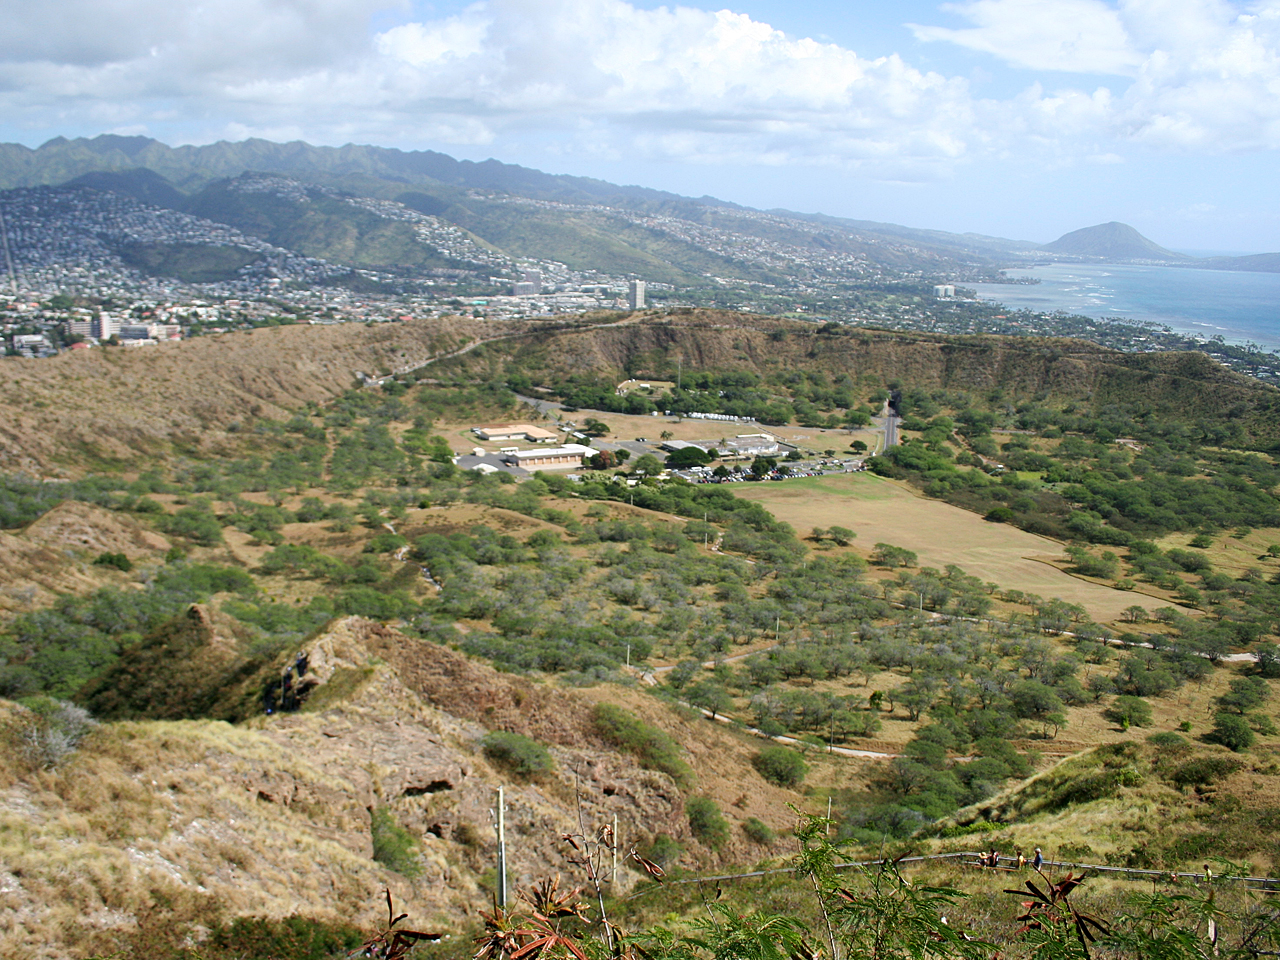 The inside of the Diamond Headcrater